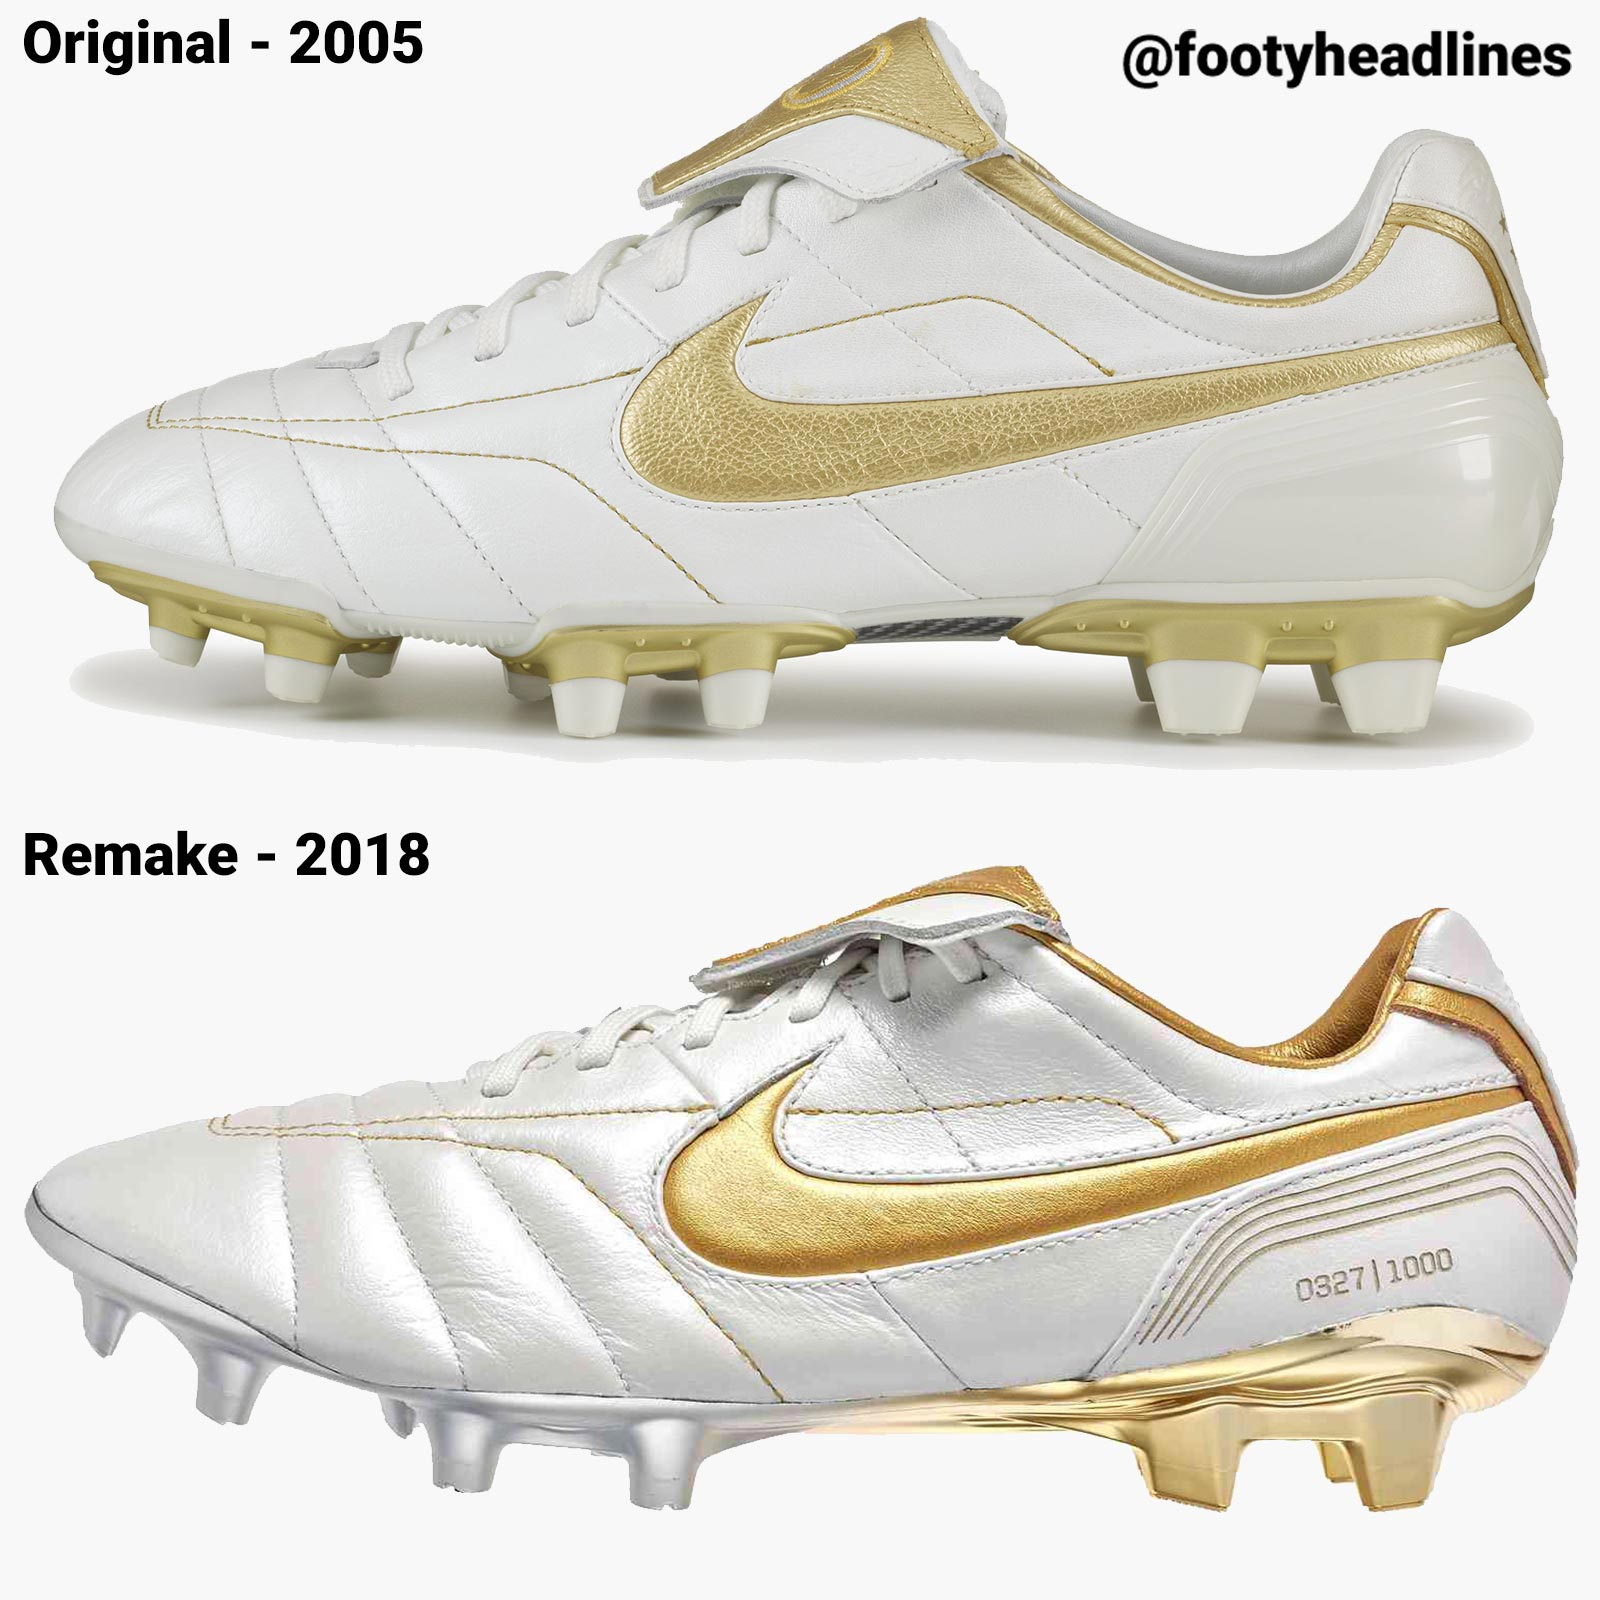 986bbe5d5 ... cheap nike tiempo air legend r10 2018 remake vs 2005 original 22c3a  2a139